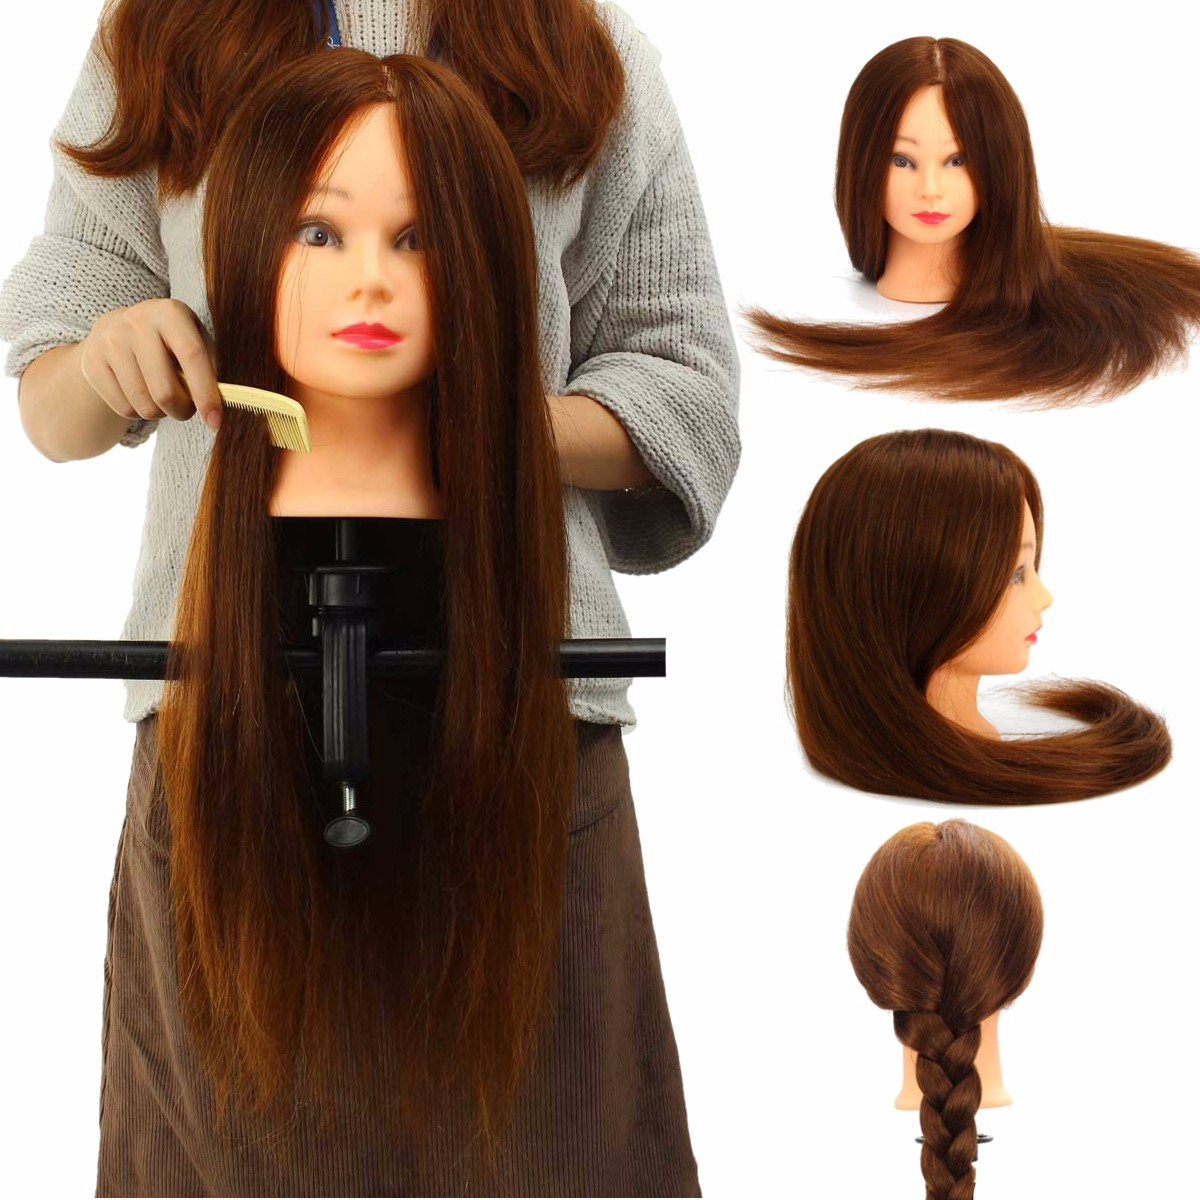 100% Real Human Hair Mannequin Head Salon Hairdressing Training Model Clamp Holder dhc40m6 500 pulse encoder incremental solid shaft rotary encoder sensor